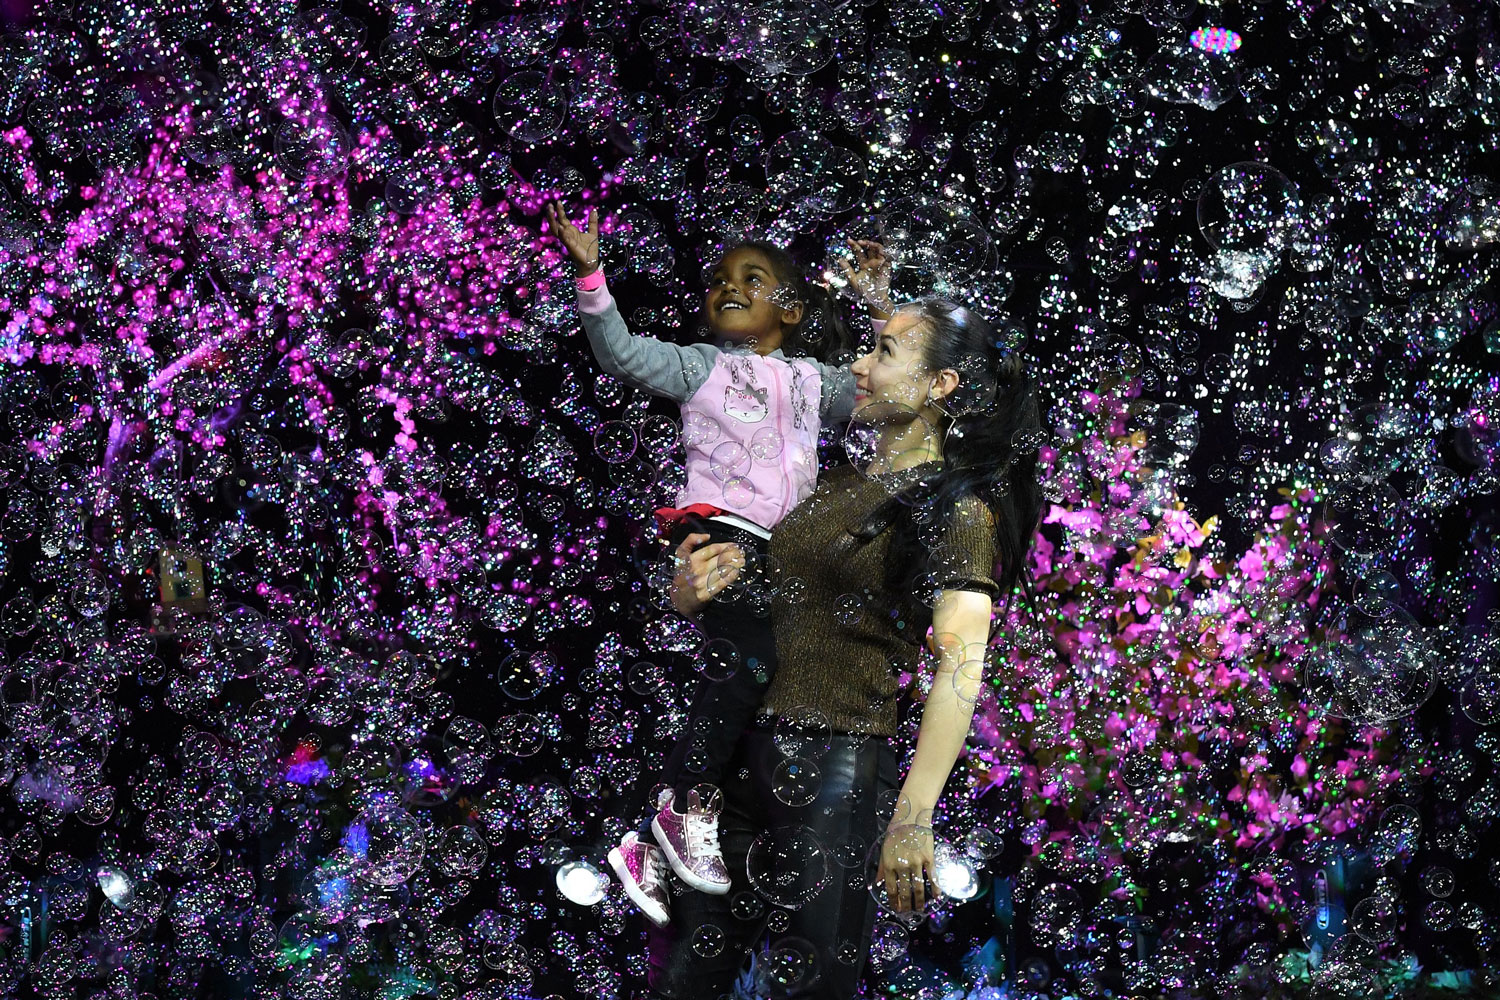 Melody Yang performs during the Mega Bubblefest Laser Show, a family-oriented event in Santa Ana, California, on April 4. Melody, daughter of famed bubble master Fan Yang, has followed in her father's footsteps and travels the world performing her bubble shows. Her family holds the world record for largest soap bubble measuring 167-feet-long, created in Beijing in 2009. (Mark Ralson/AFP/Getty Images)